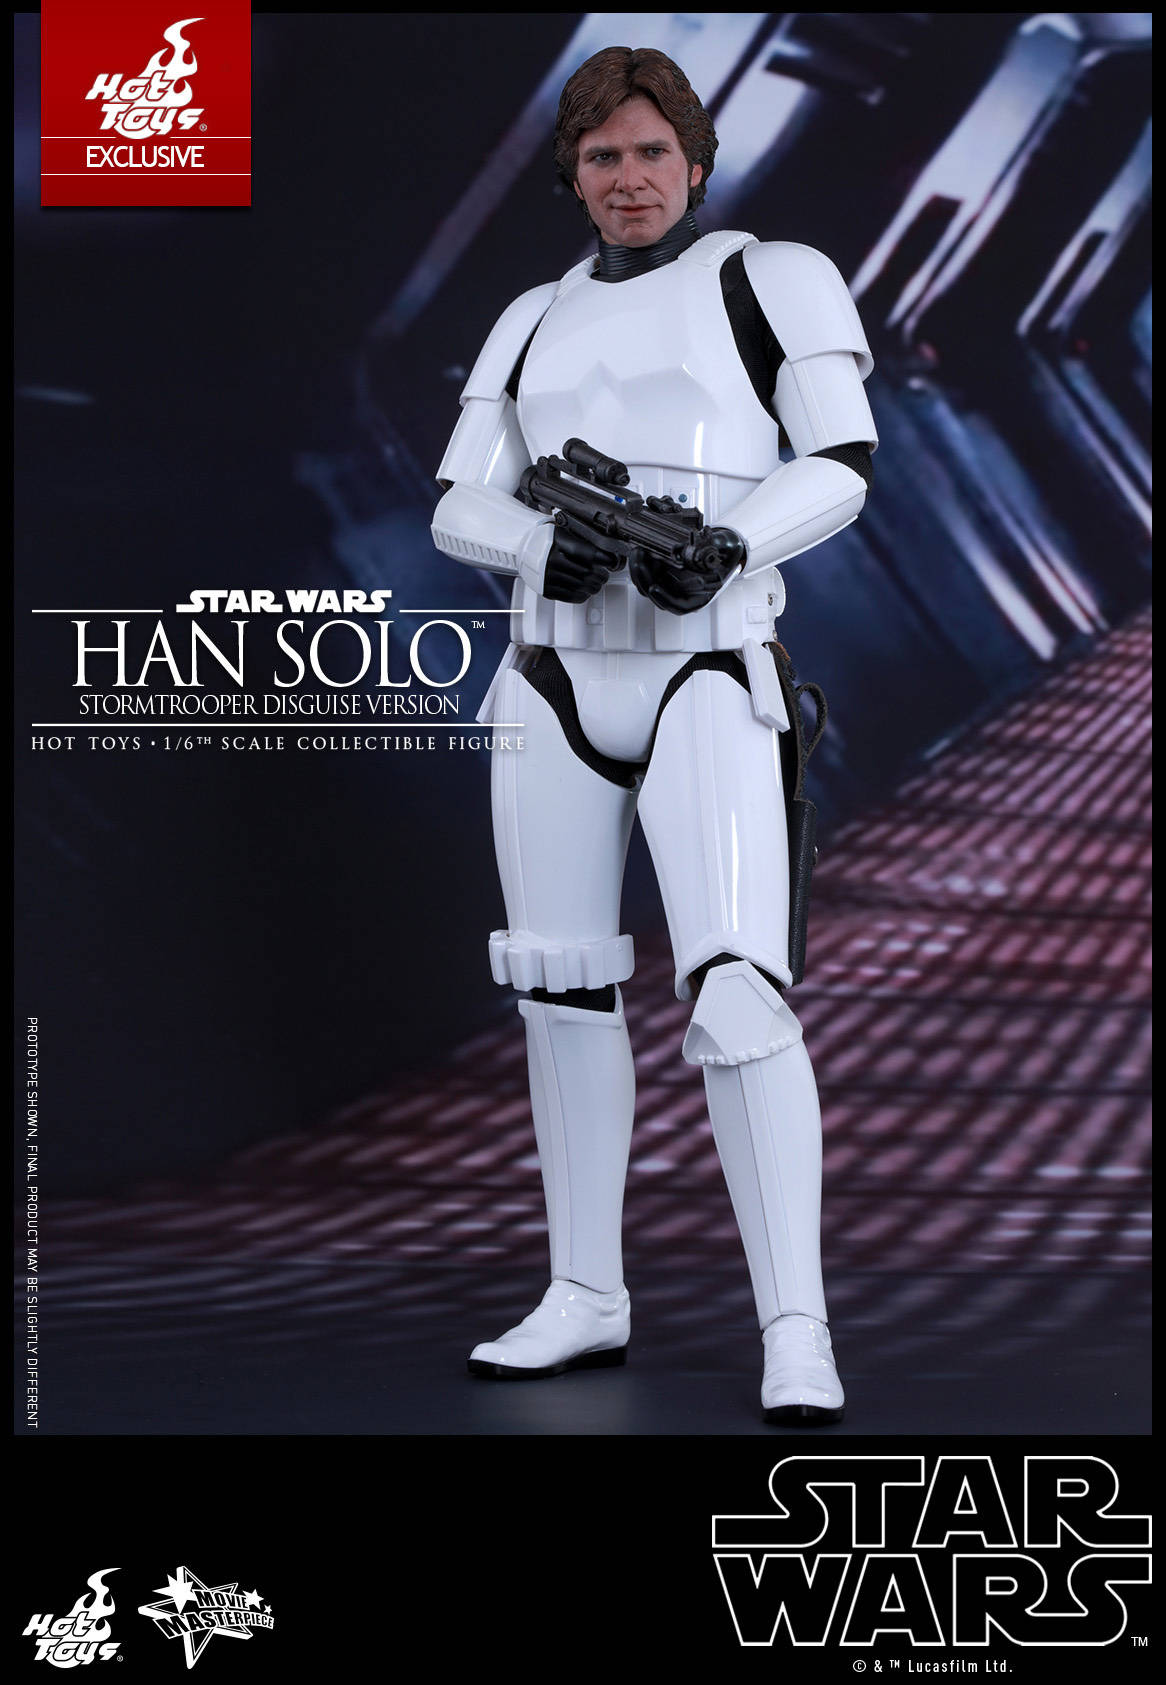 Hot-Toys---Star-Wars---Han-Solo-(Stormtrooper-Disguise-Version)-Collectible-Figure PR4